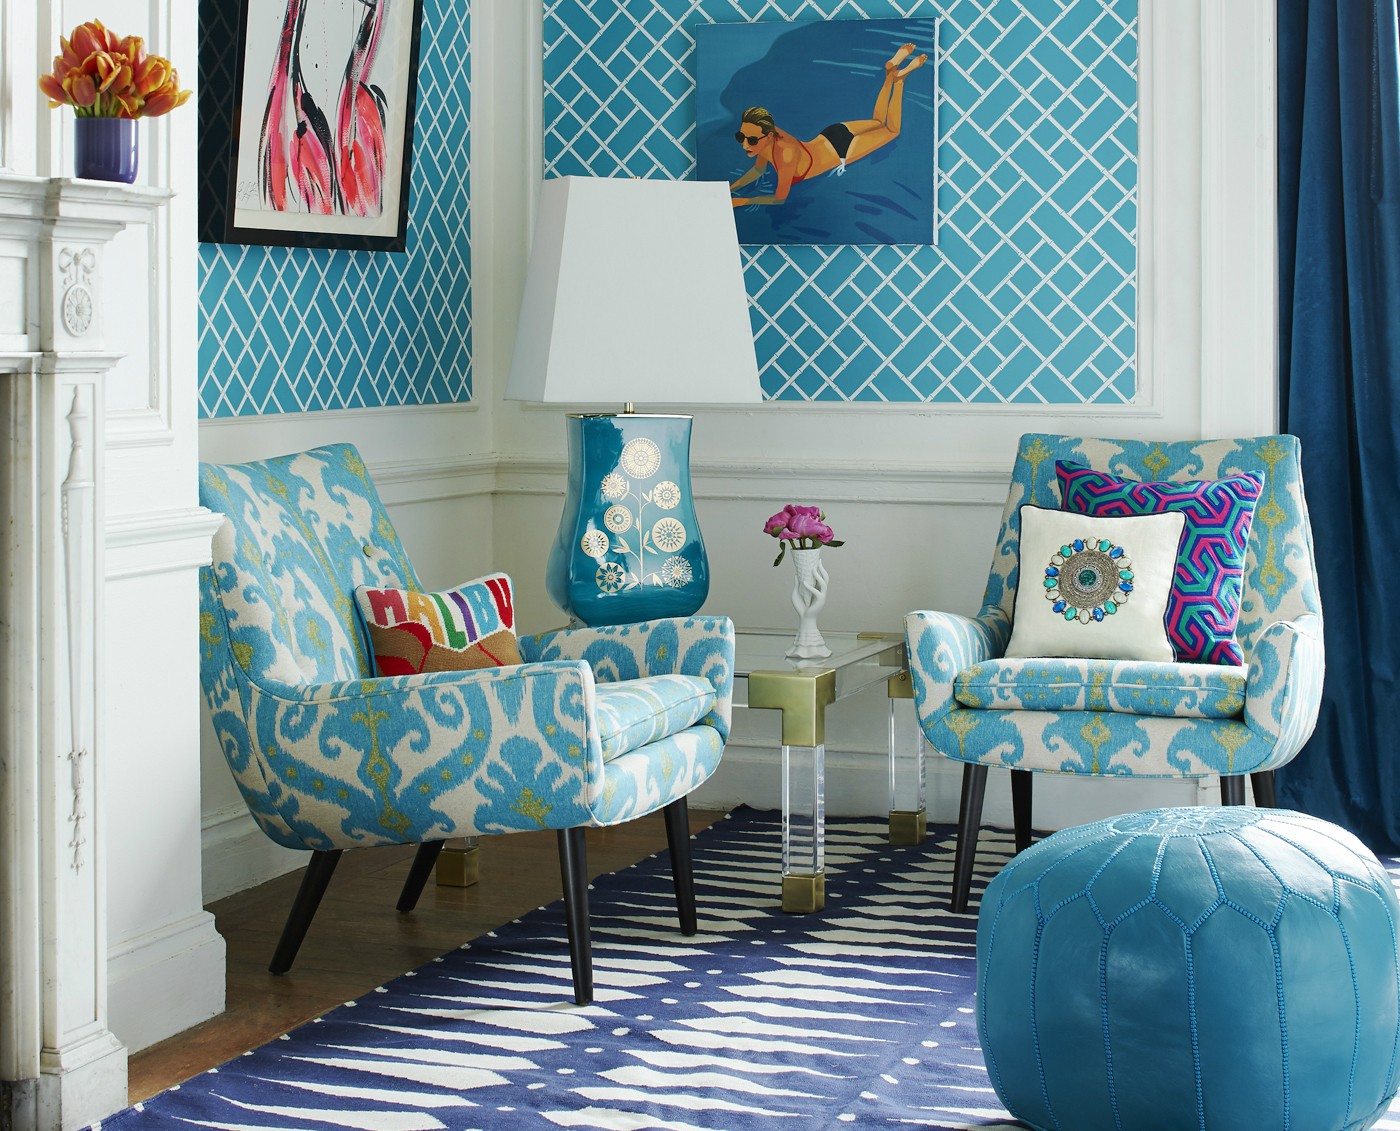 6 jonathan adler living room mrs godfrey chairs in marrakesh sea ikat linen bamboo reverse wallpaper in teal and white lifestyle portrait